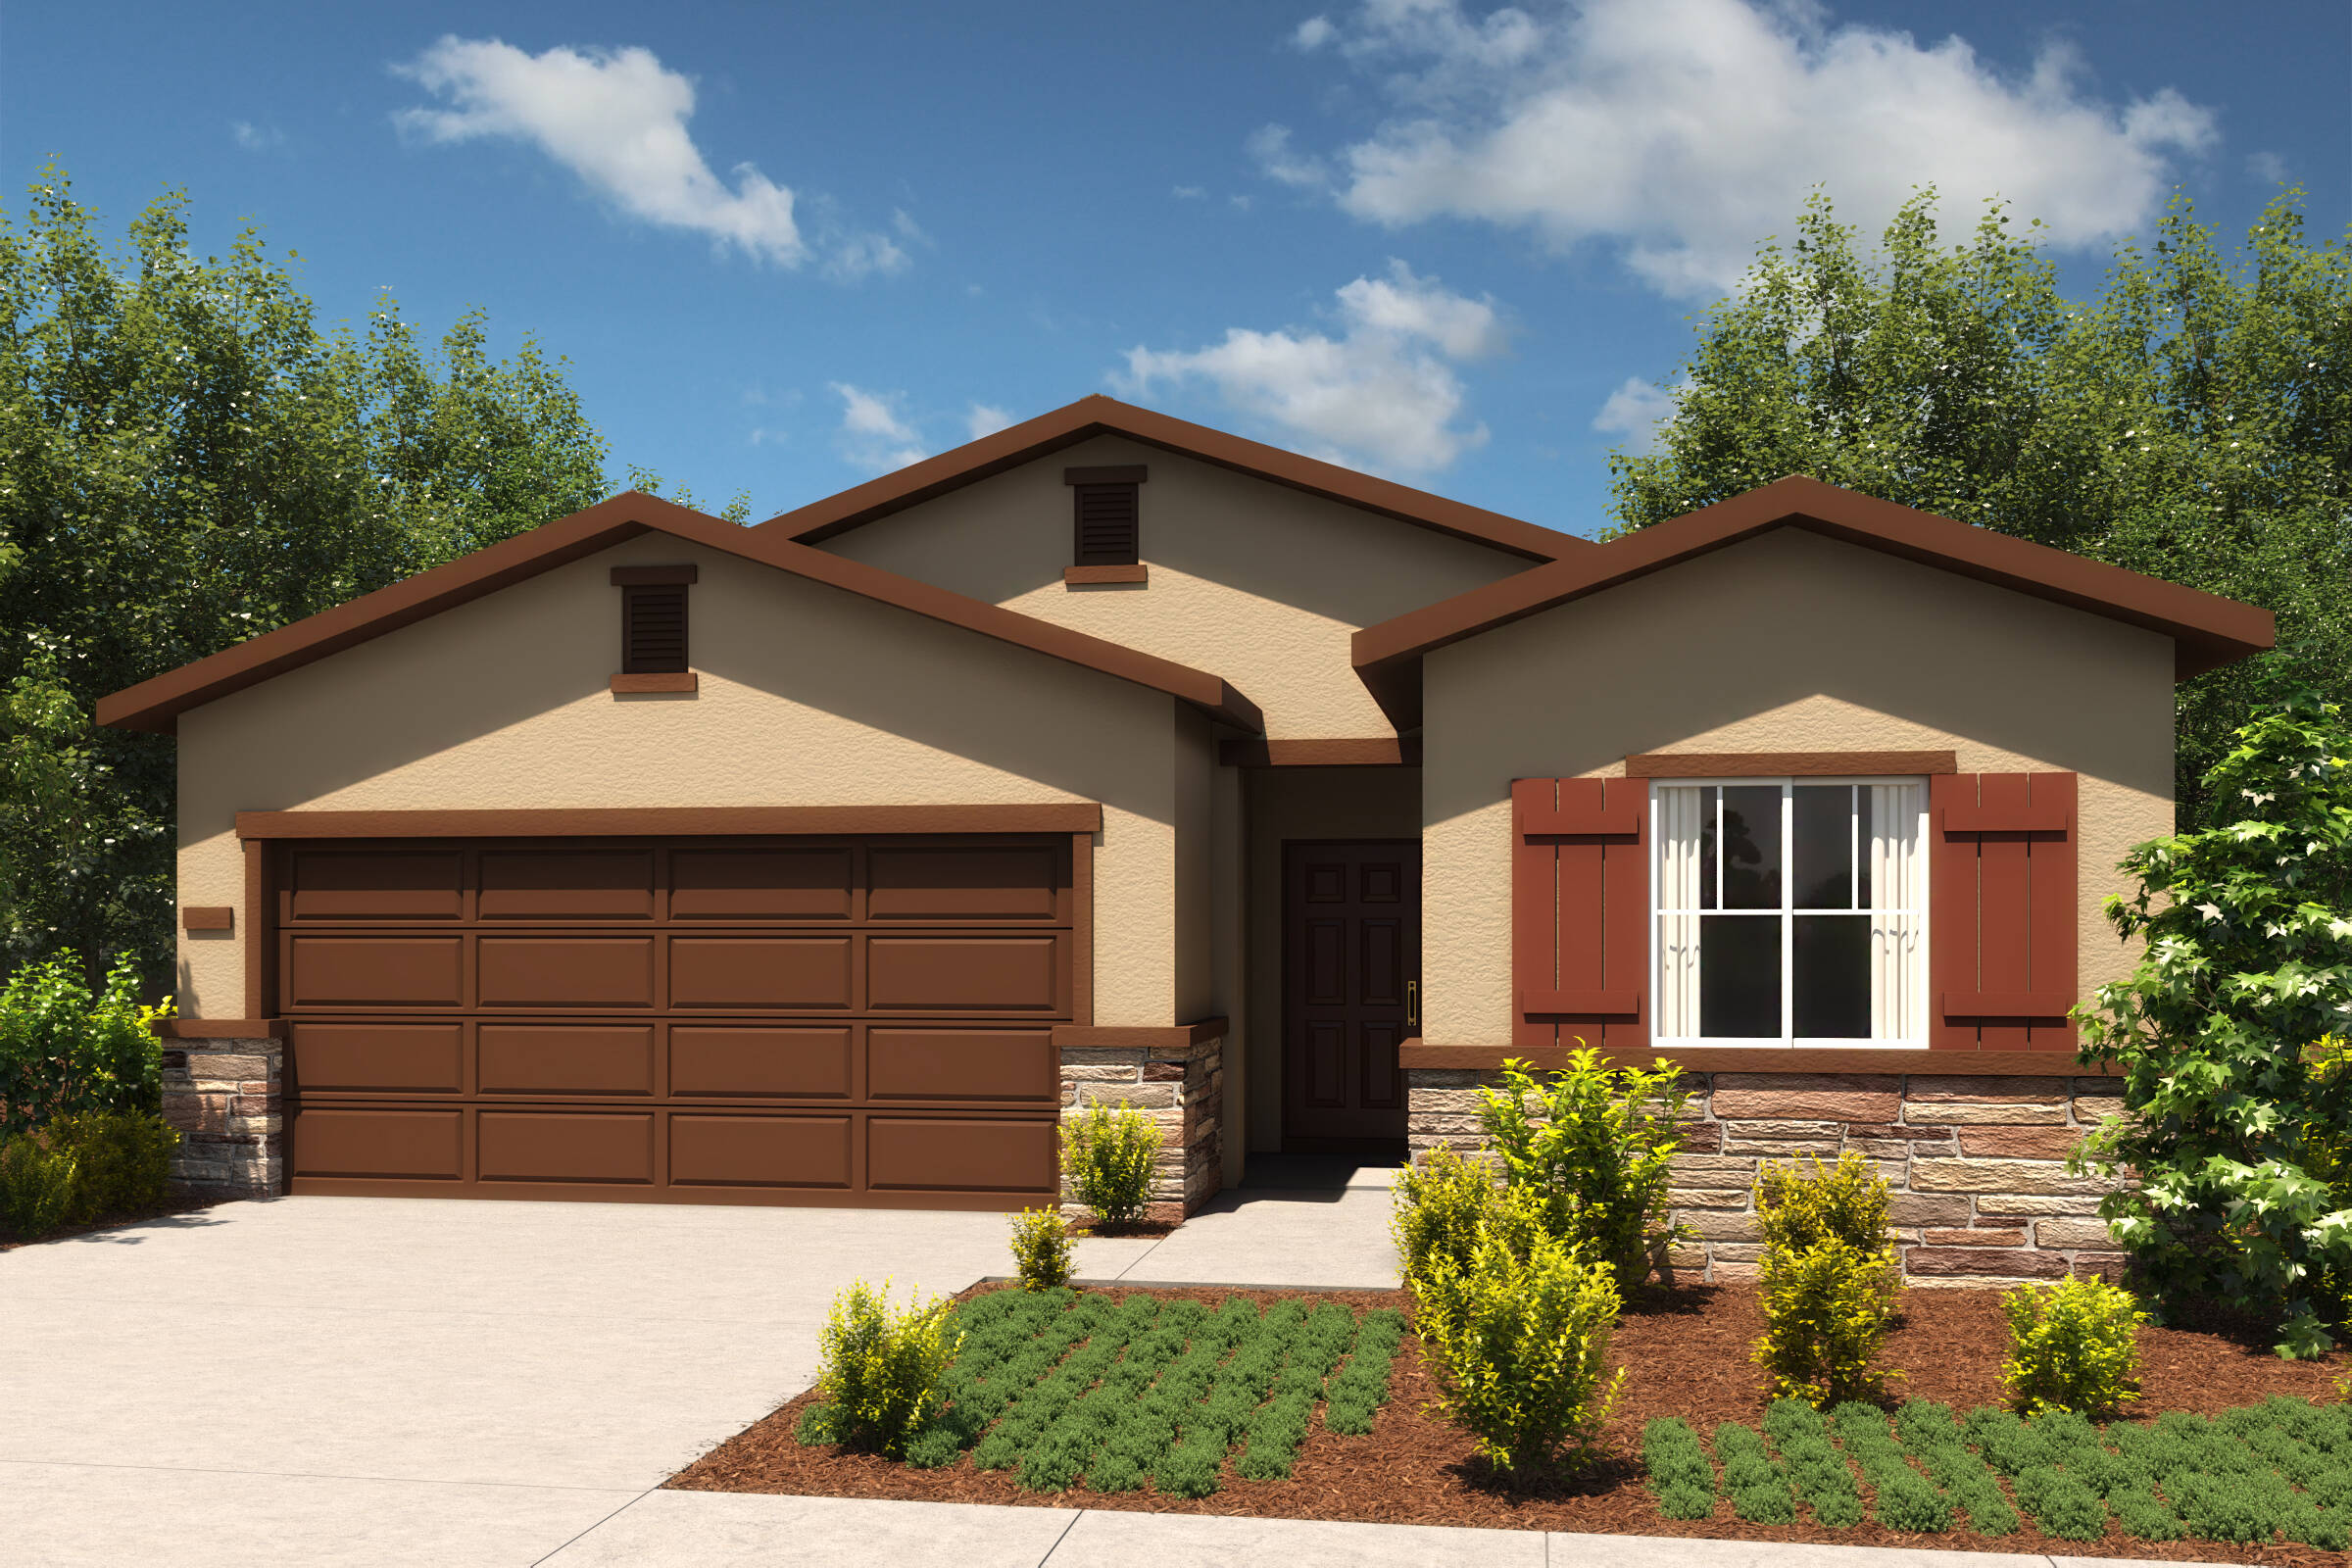 yosemite b craftsman new homes merced california